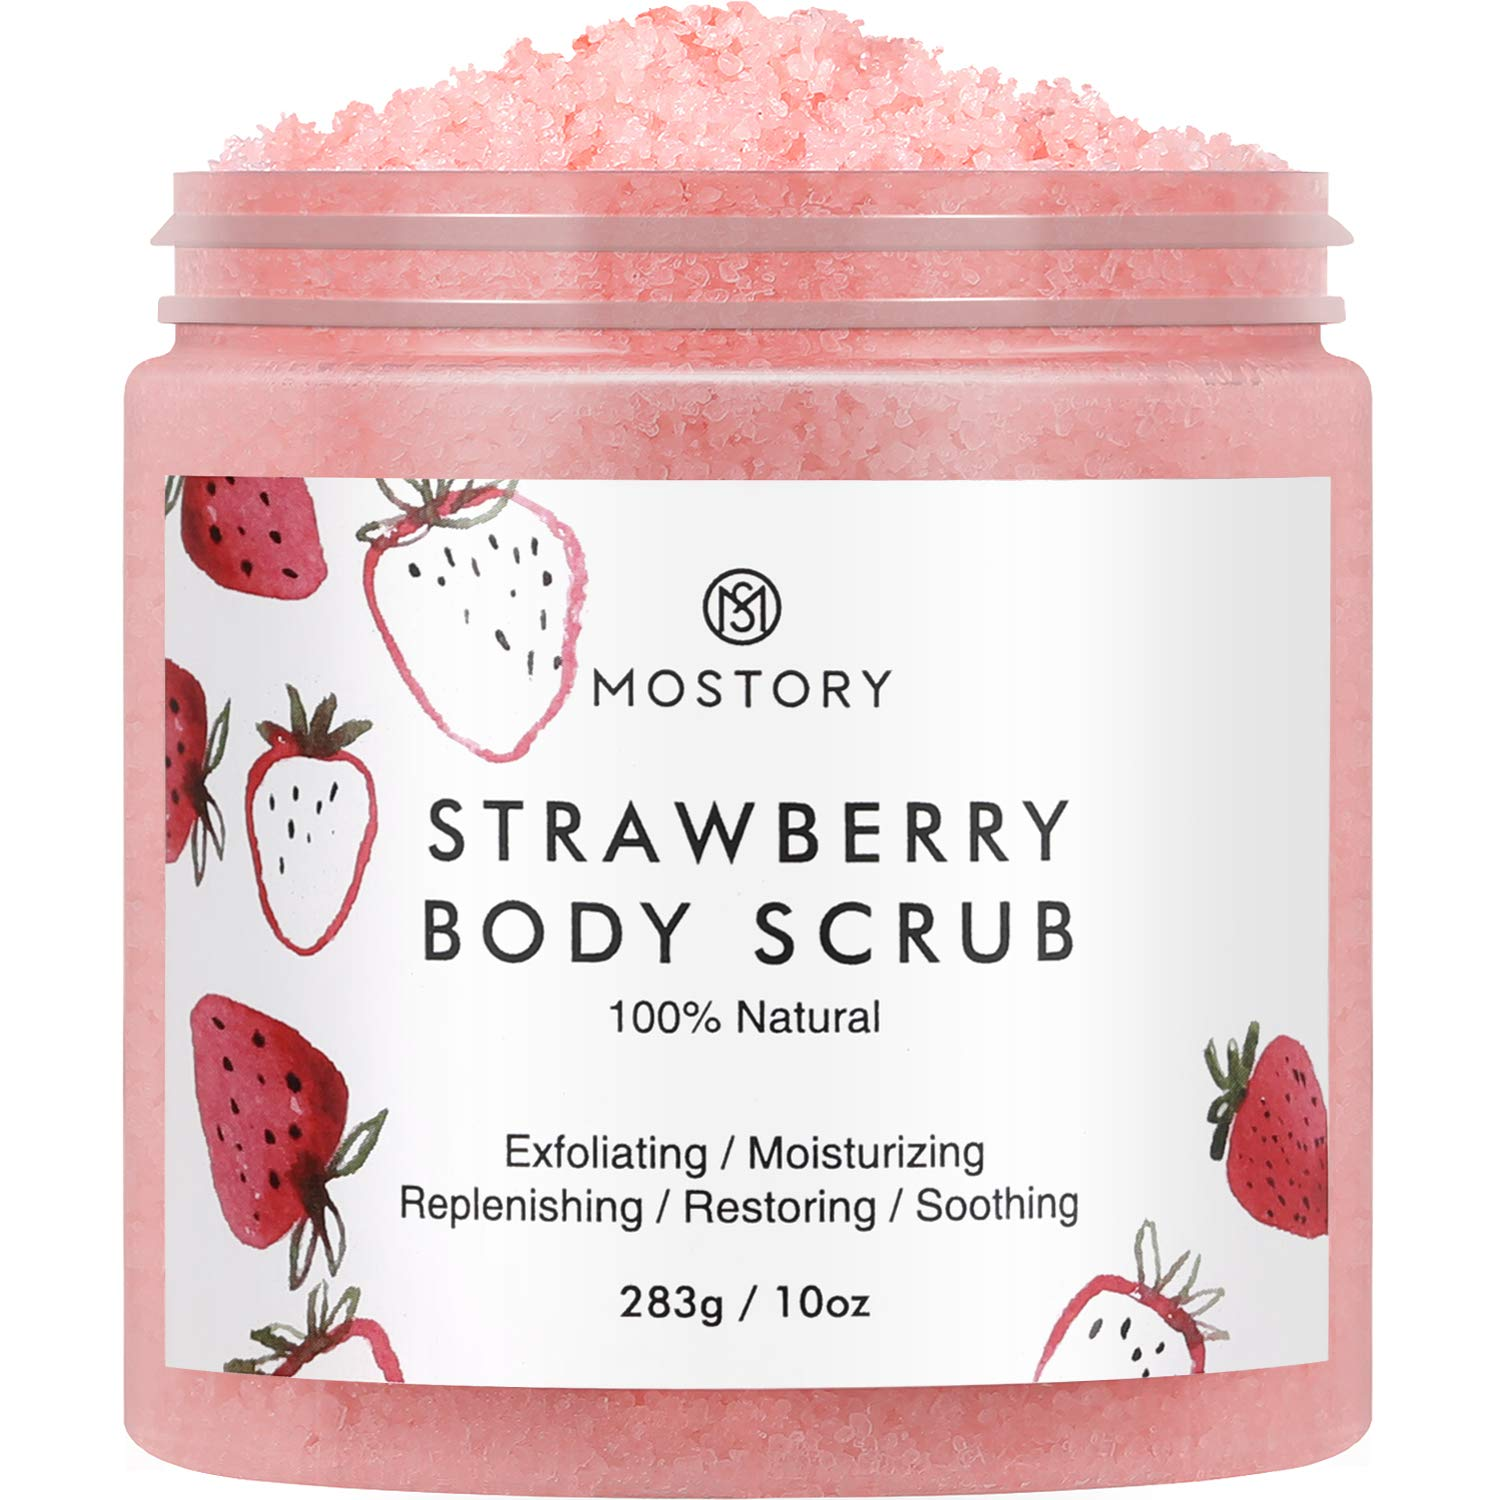 Sweet Strawberry Exfoliating Body Scrub - Organic Dead Sea Salt Natural Exfoliator Anti Aging Acne Cellulite Wrinkles Moisturizing Nourishing Vitamin E Vitamin C Coconut Oil Scrubs for Women Men 10 oz : Beauty